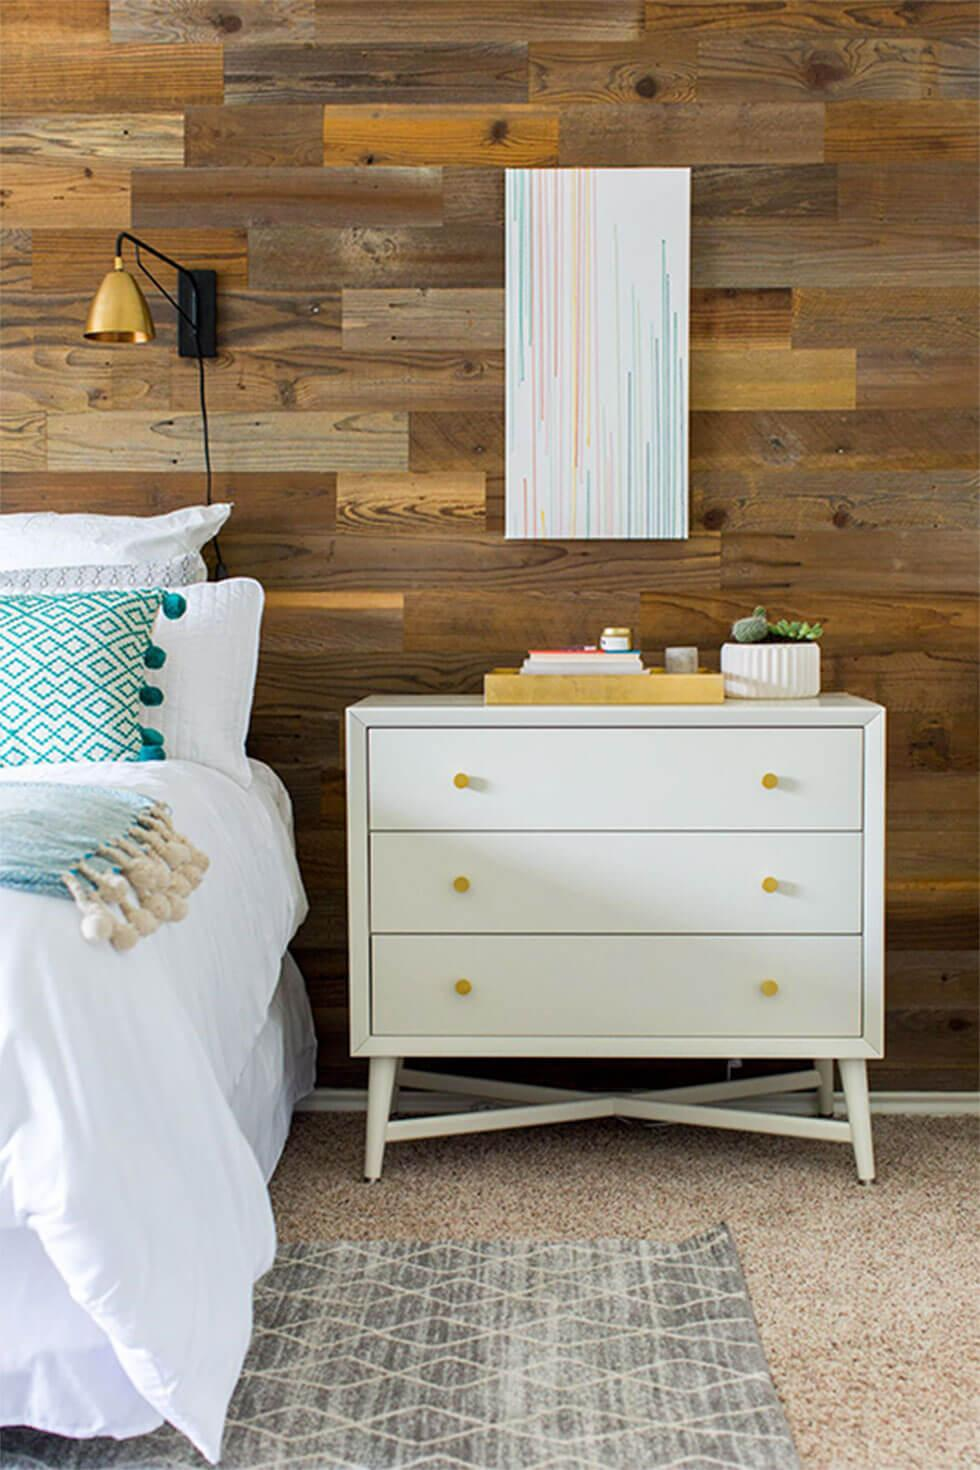 A rustic styled bedroom with a wooden feature wall.